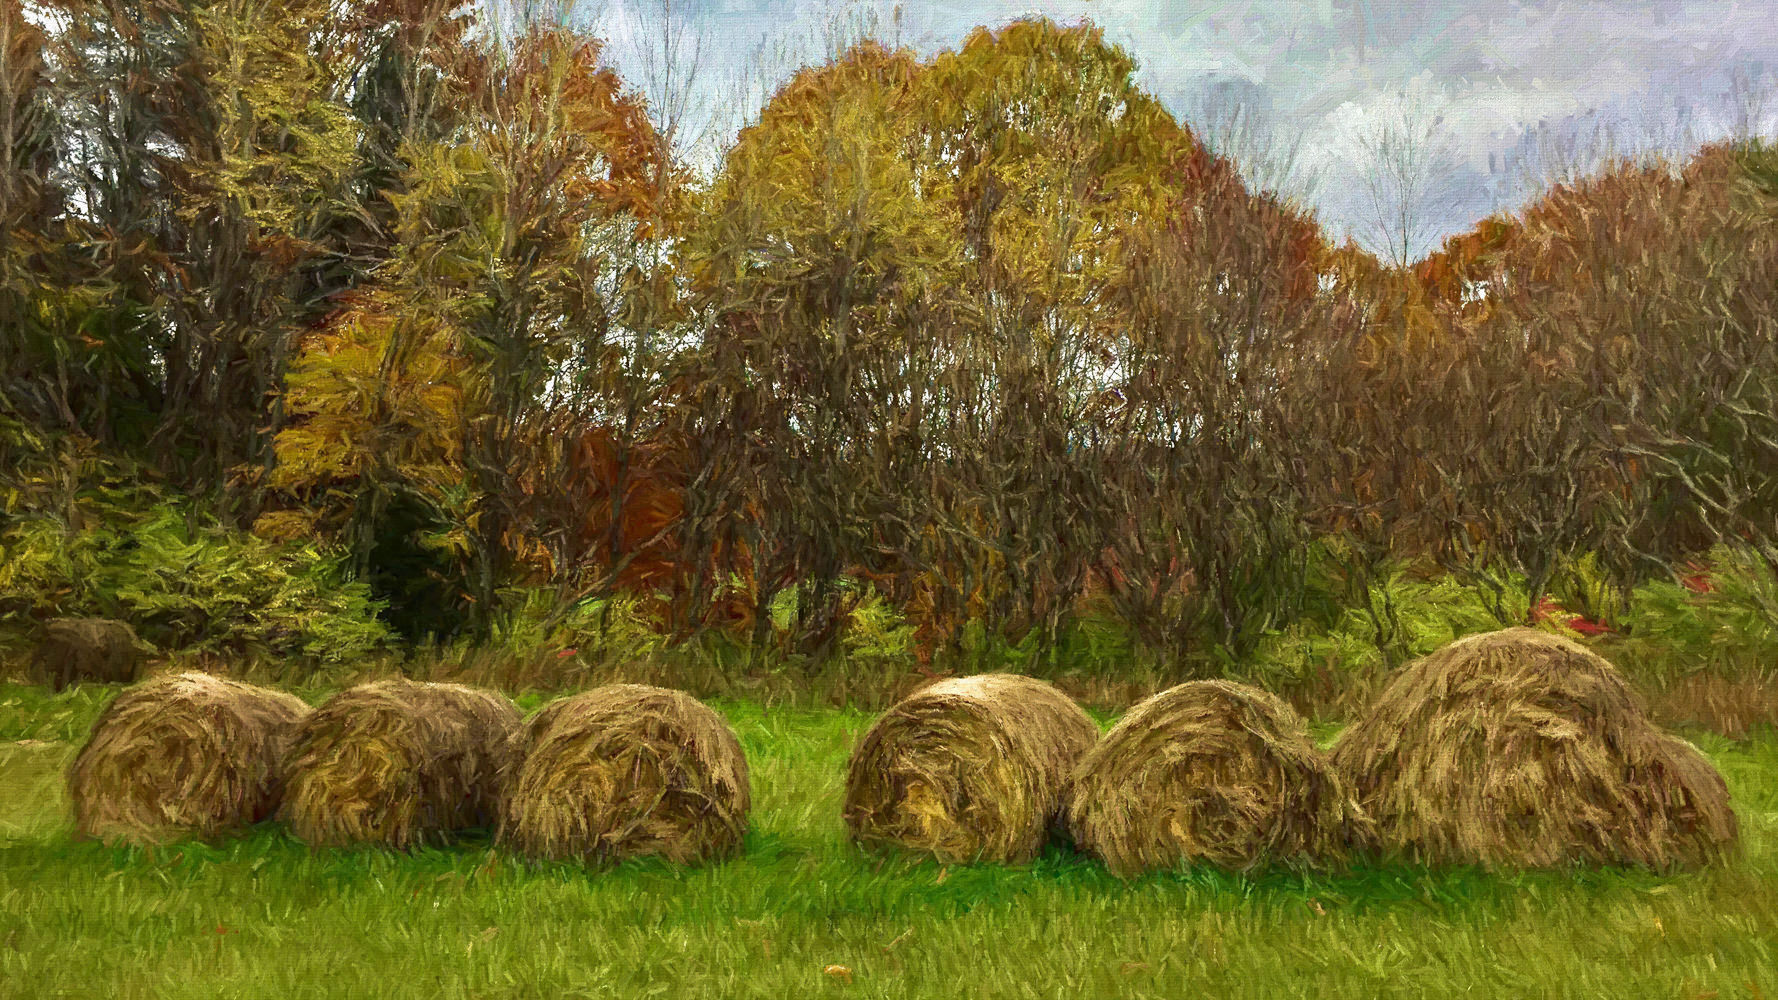 Hay bales, Quechee green belt field, Quechee, Vermont. Brush enhanced